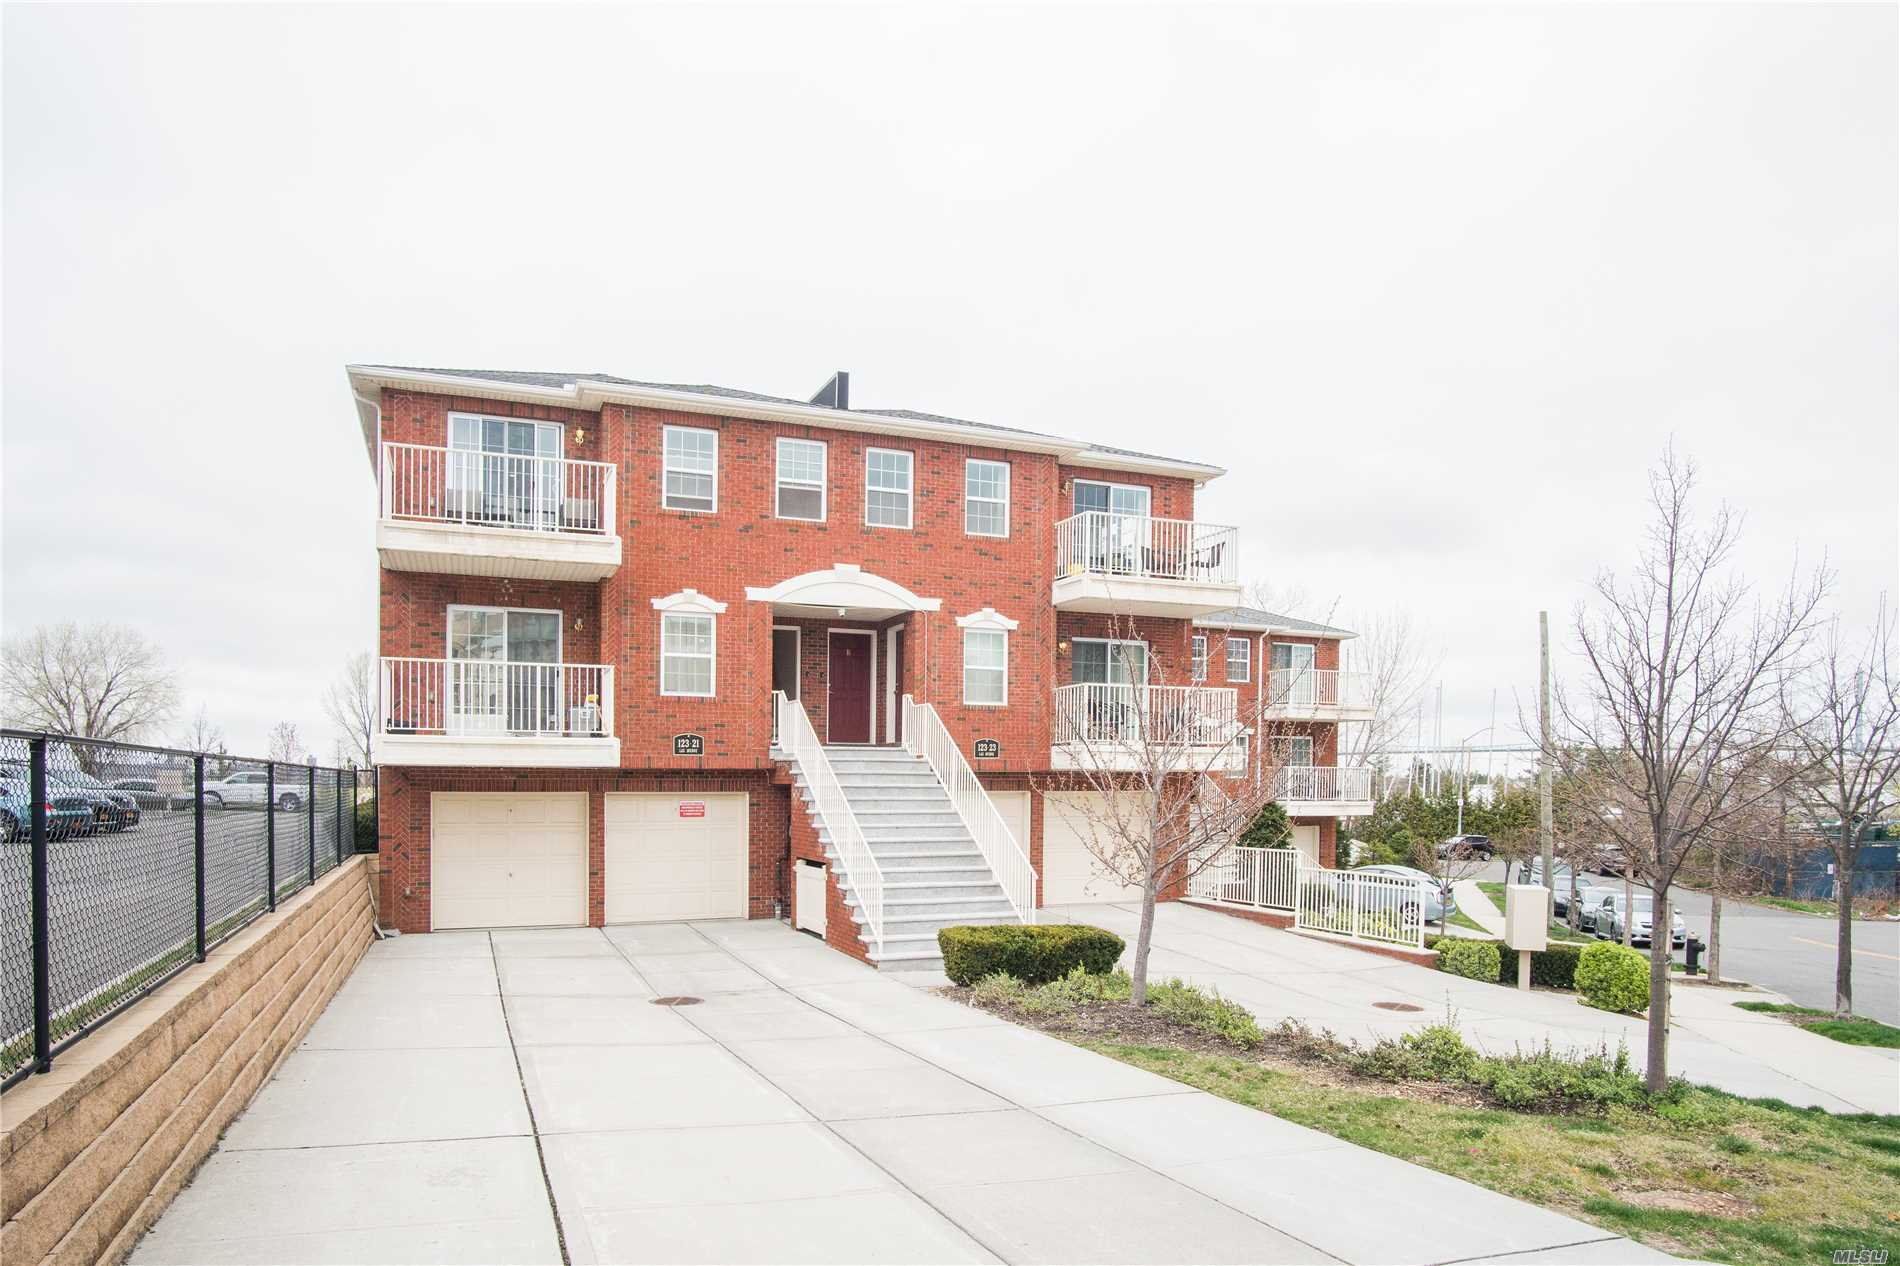 Excellent Condition Huge 3Bed 2Bath Condo Unit With Water View From Master Bedroom. Conveniently Located Near Waterfront Walkway Great For Morning Jogging Or Just Leisure Strolling. Only a couple of blocks to Hermon A. MacNeil Park. Unit is situated right in front of the Yacht Club. Spacious Walk In Closet And Kitchen With Large Island. Low Common Charges And Tax Abatement Until 2026. This Condo Unit Includes A Parking Spot.